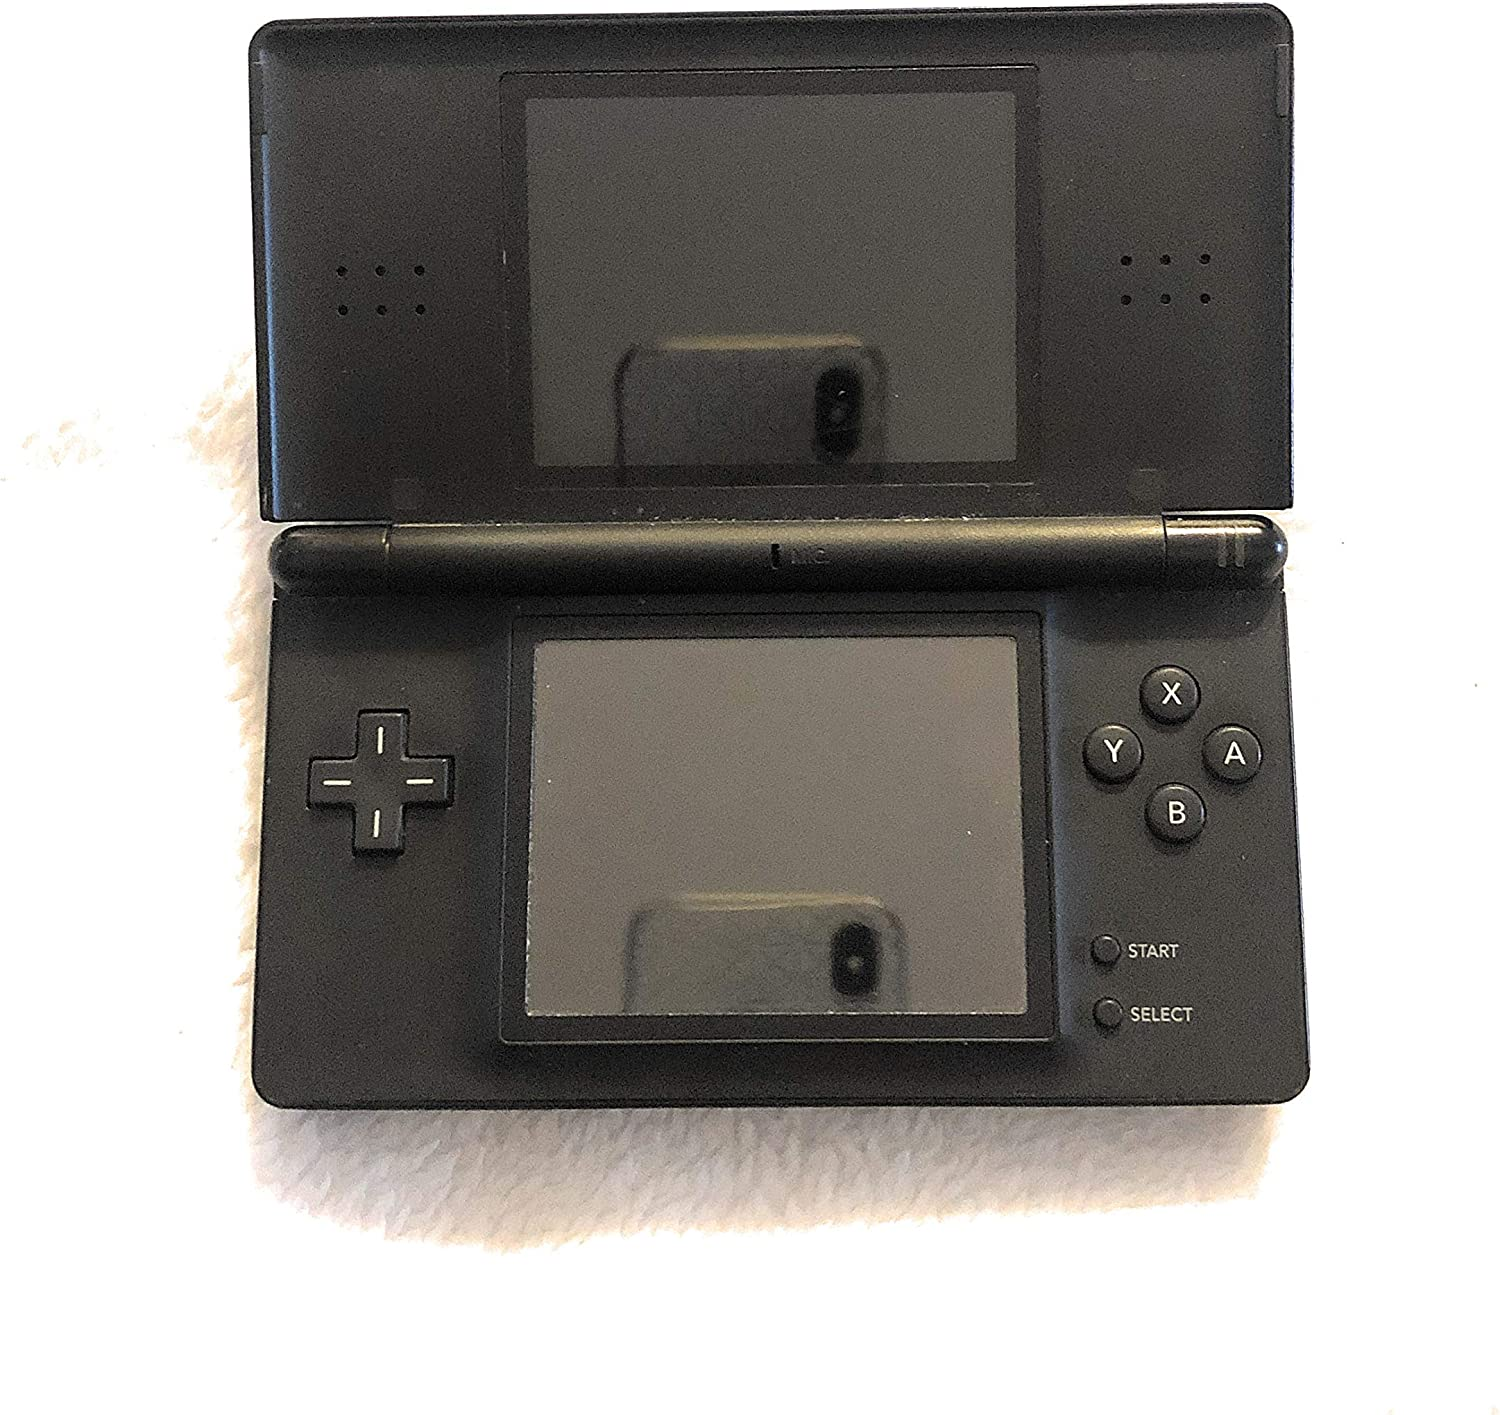 Nintendo DS Lite Handheld Dual LCD One Touchscreen Game System w WiFi Cobalt Blue